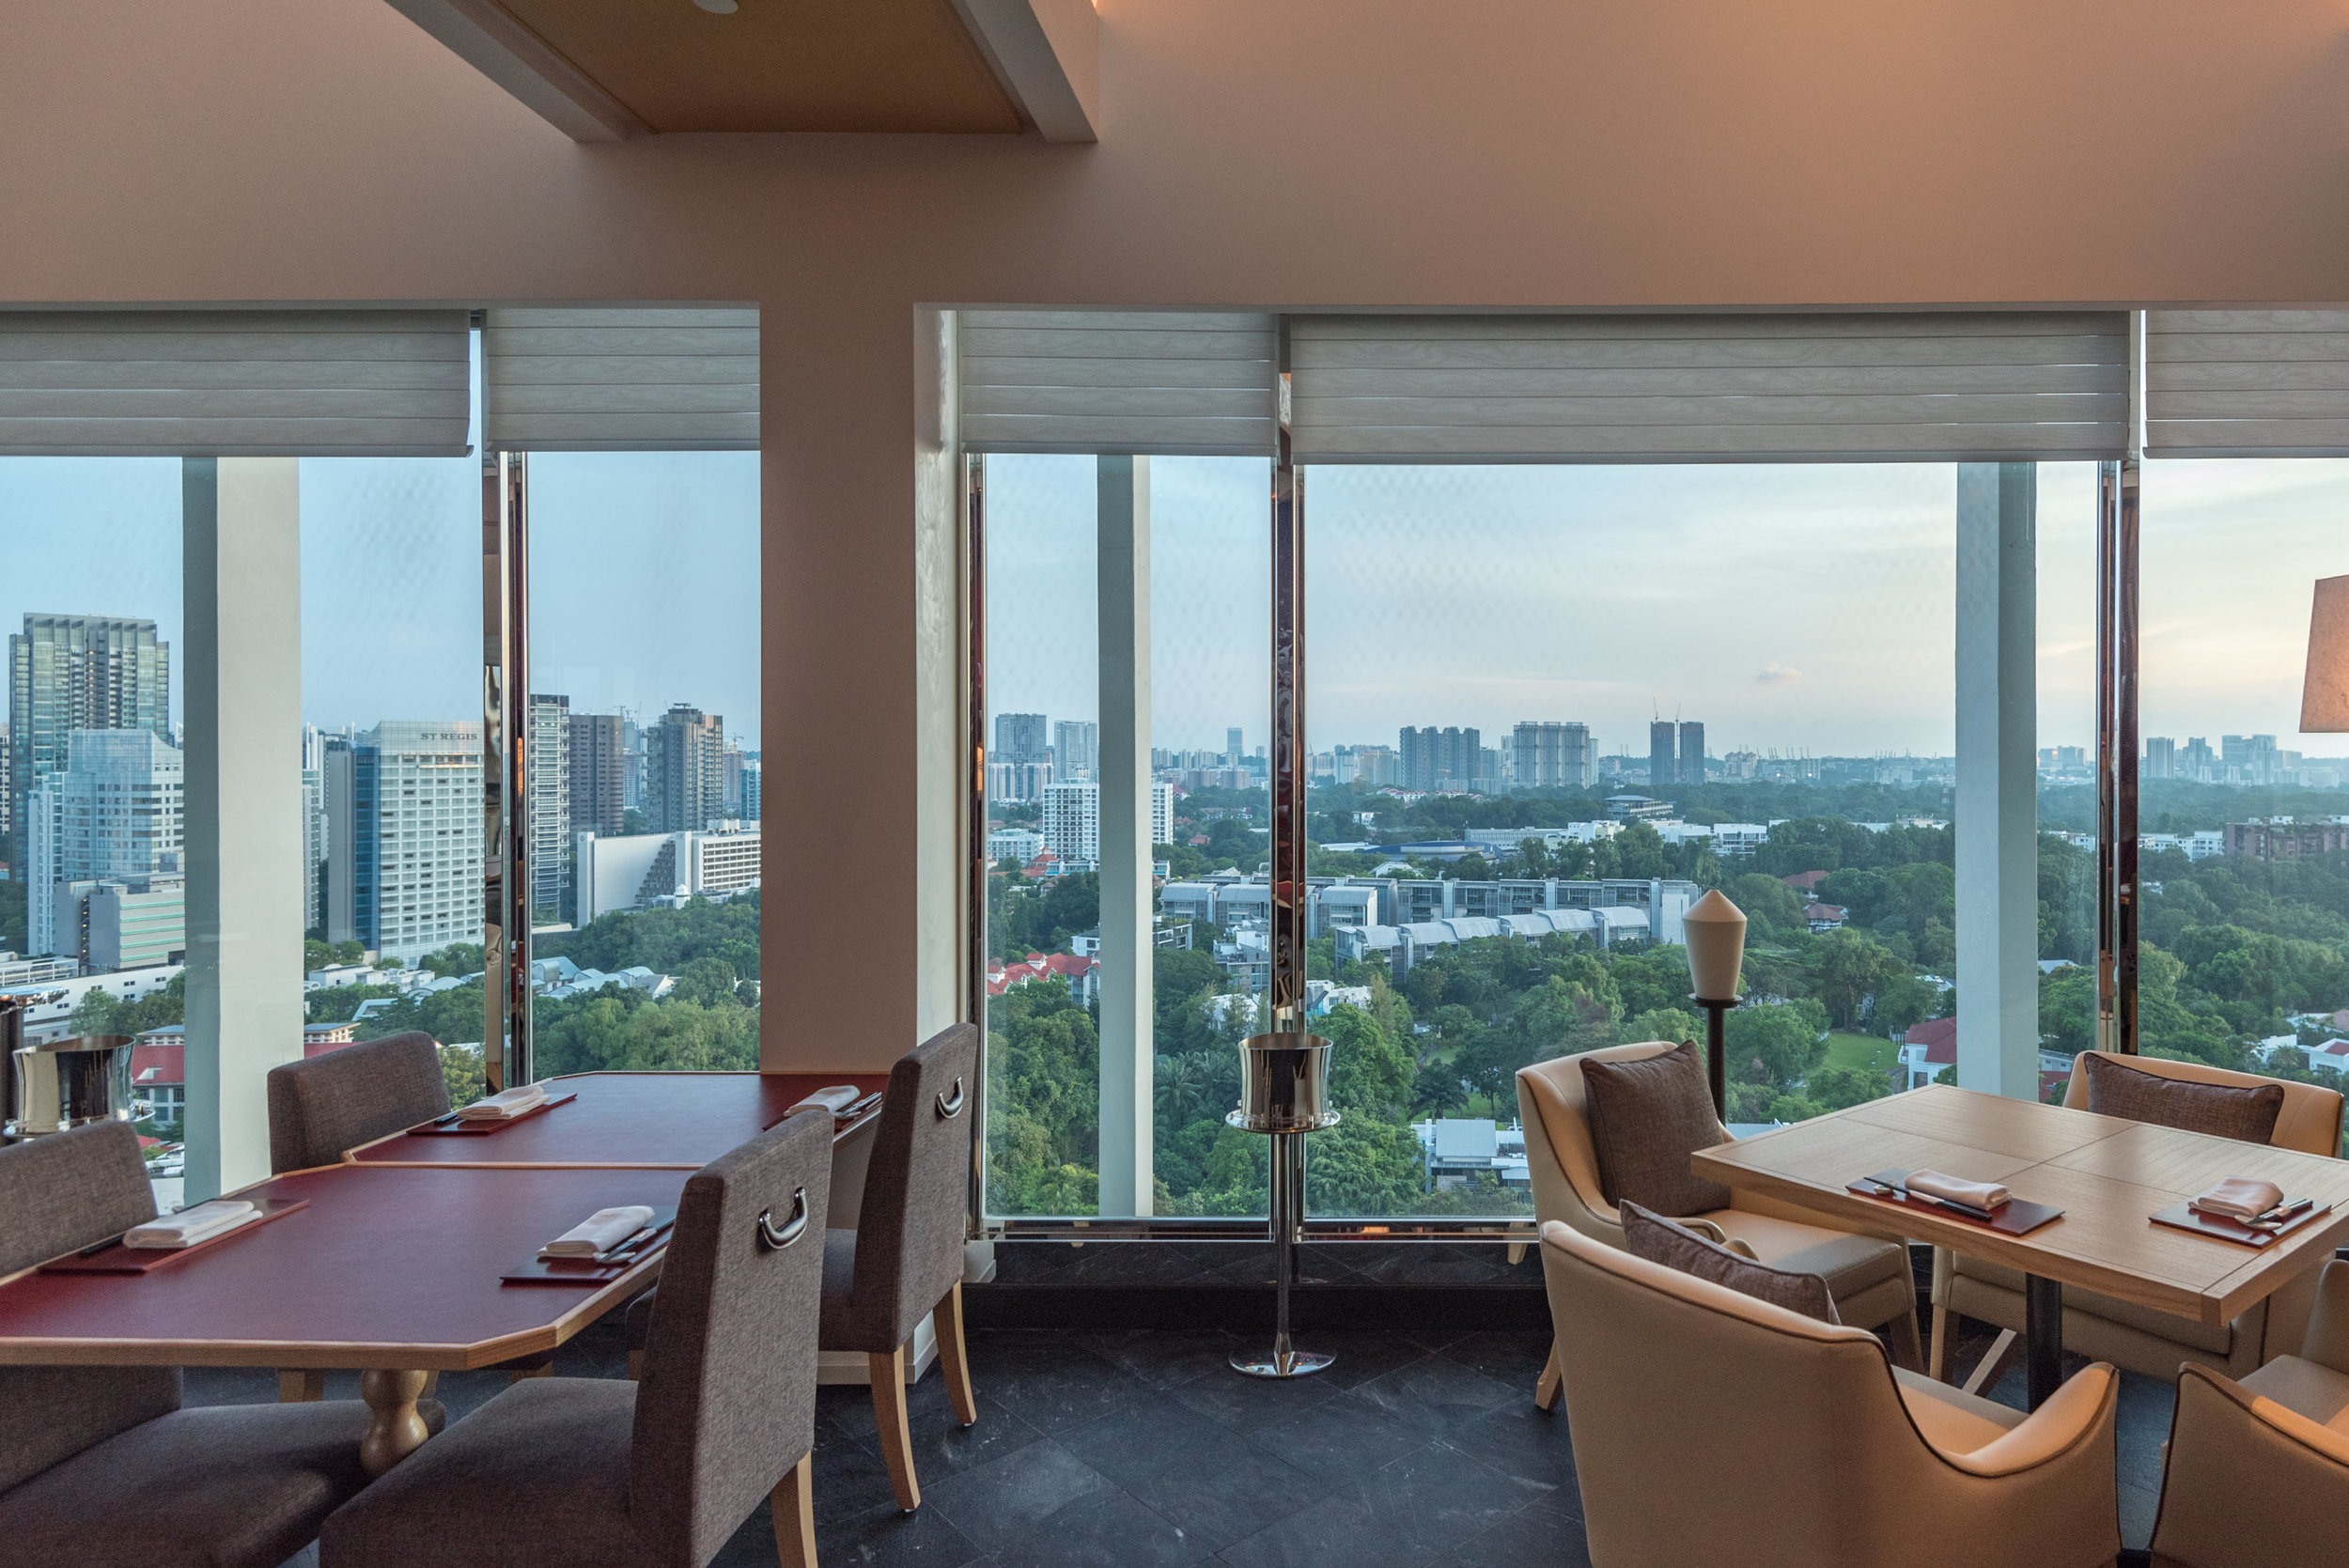 Japanese Fine Dining Restaurant with a View  NAMI - Shangri-La Hotel, Singapore